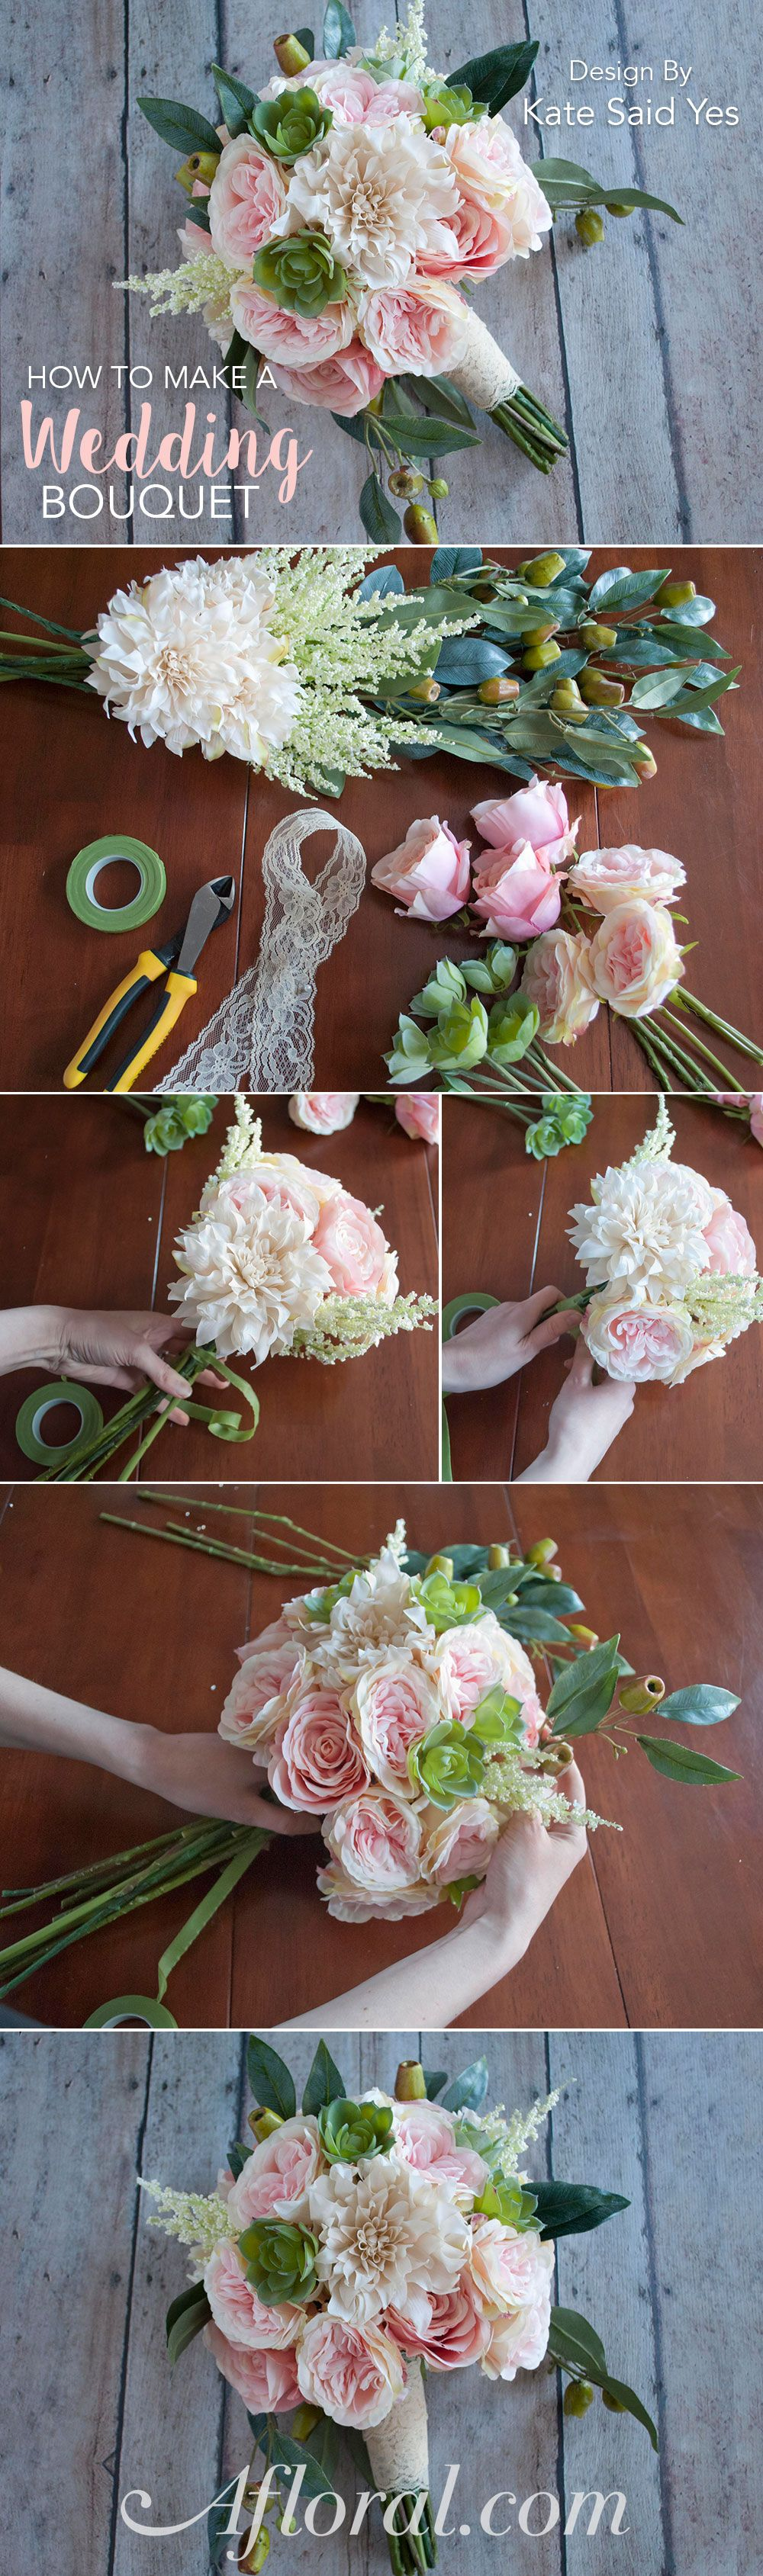 How To Make A Wedding Bouquet | Pinterest | Silk flowers, Silk and ...